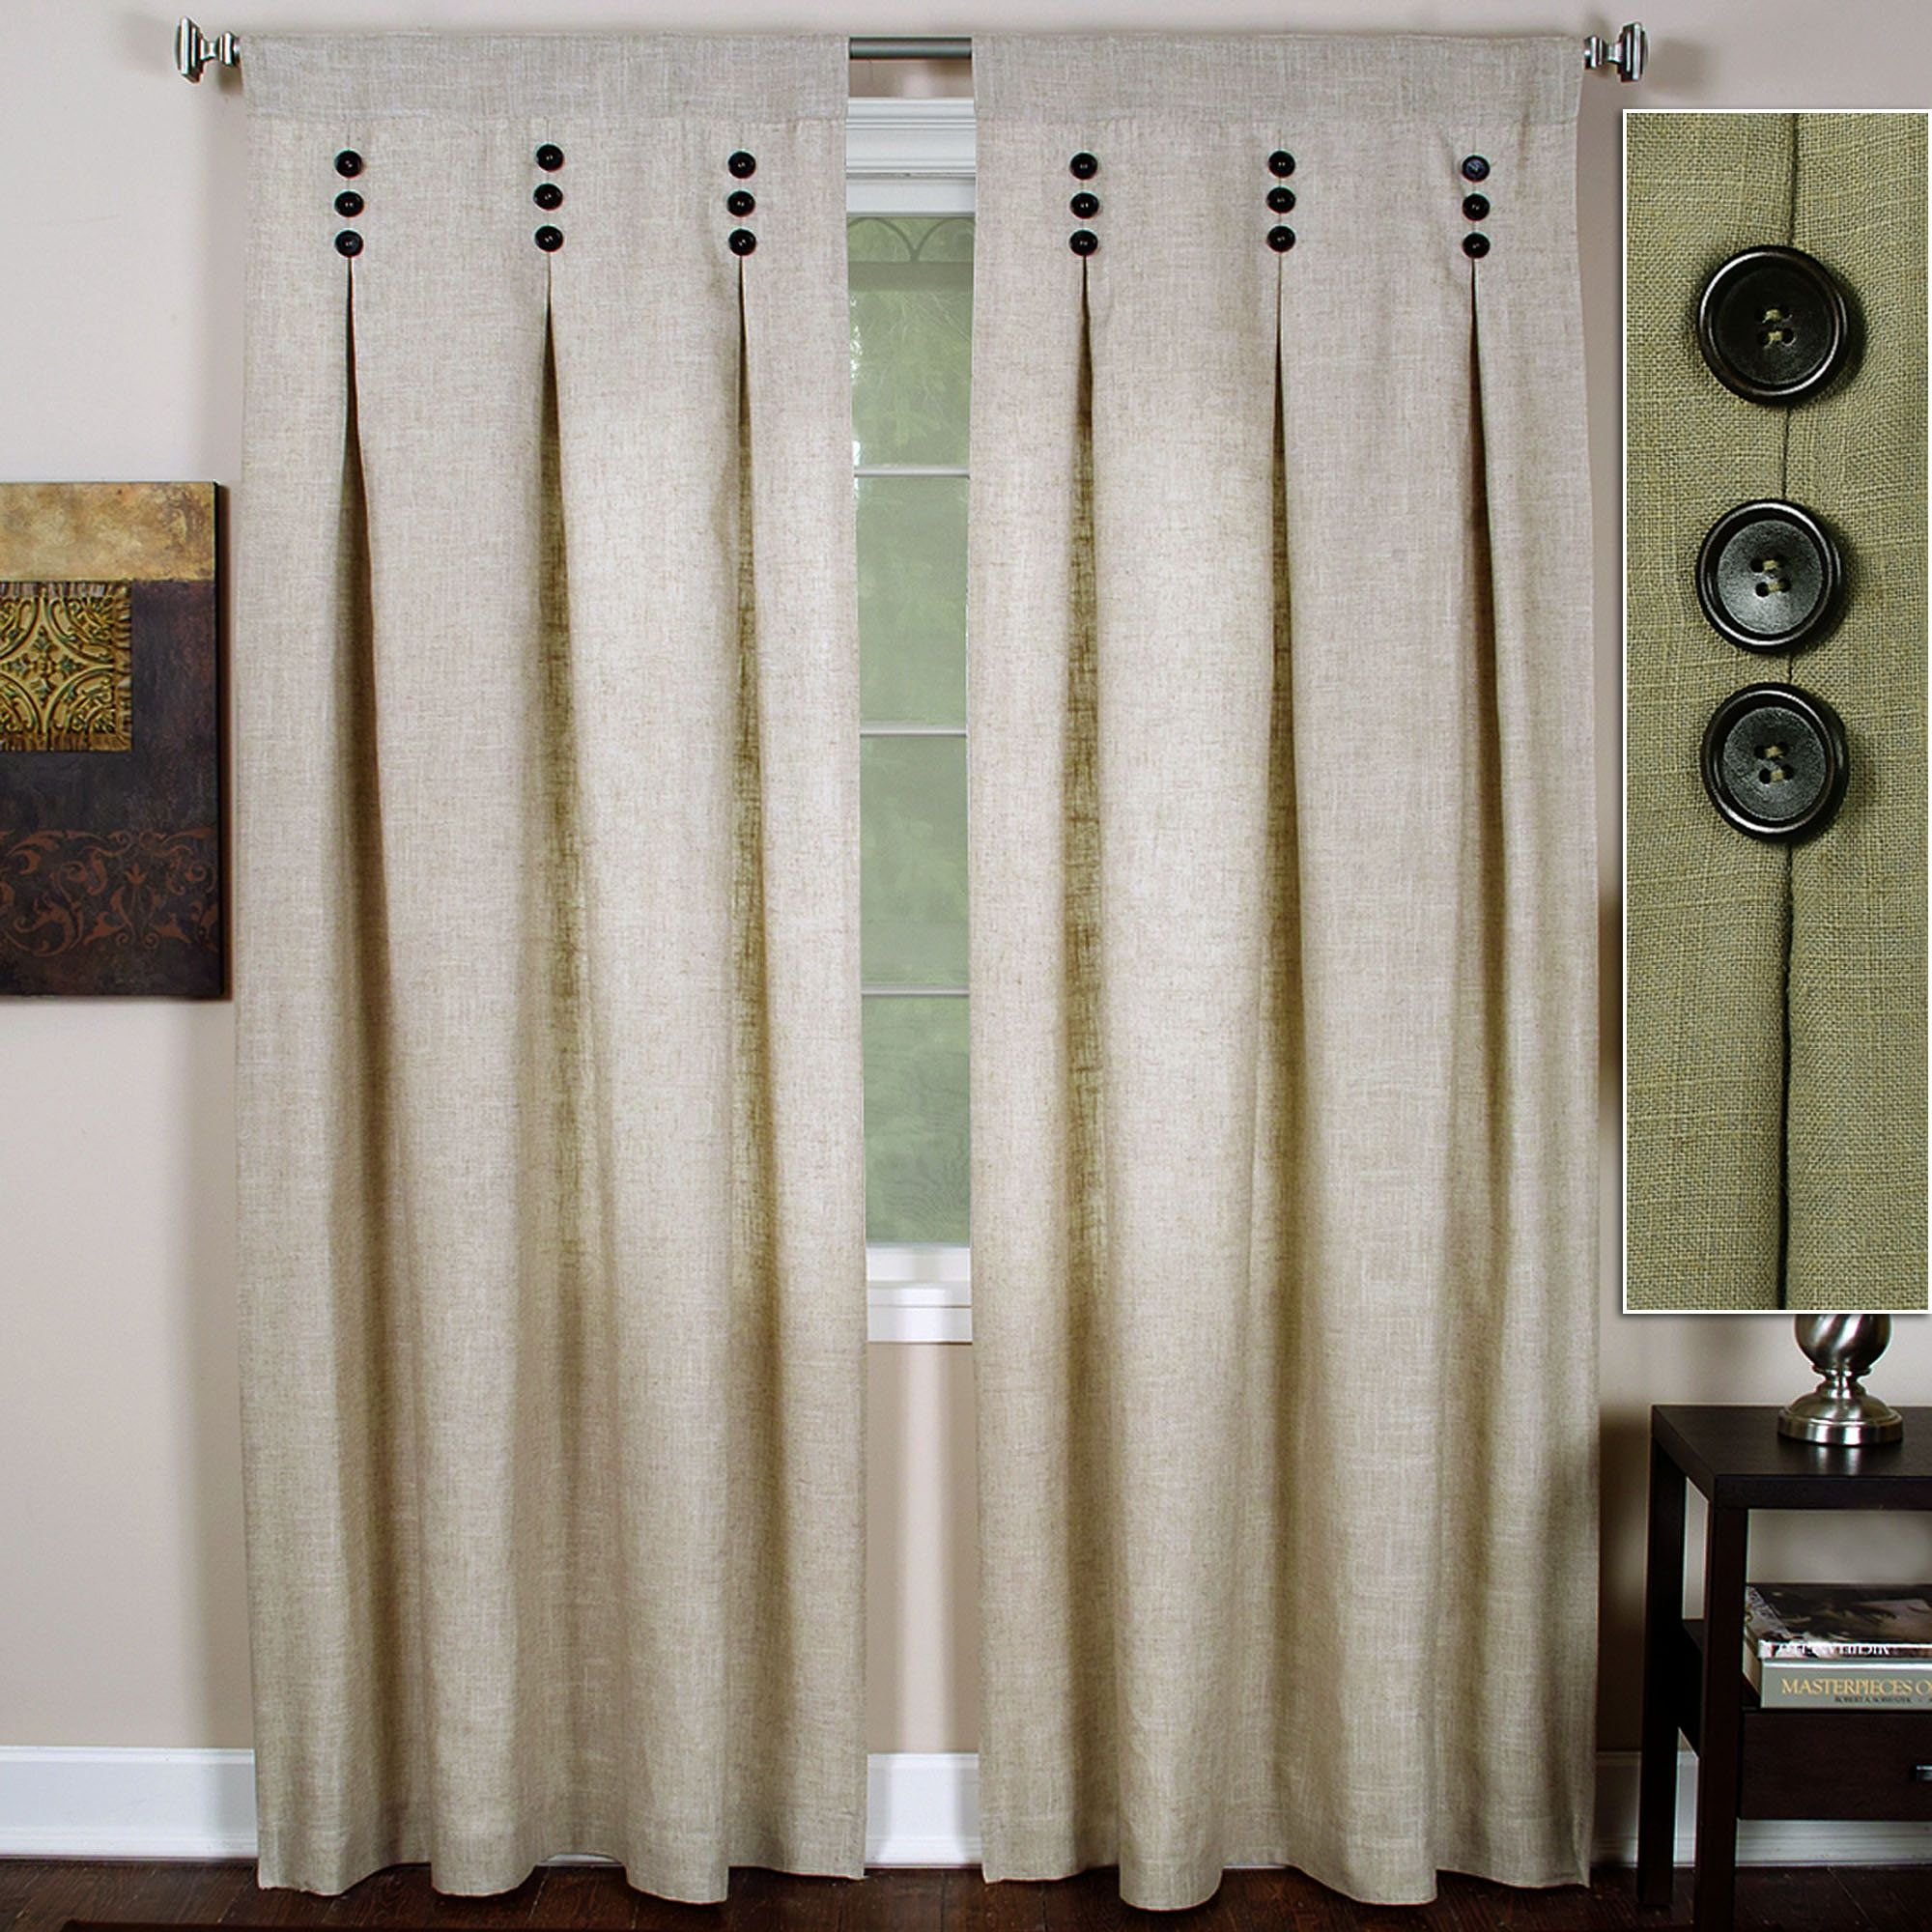 Contemporary curtains panels - Drapes Modern Curtains And Drapes Inverted Pleat Curtains Design